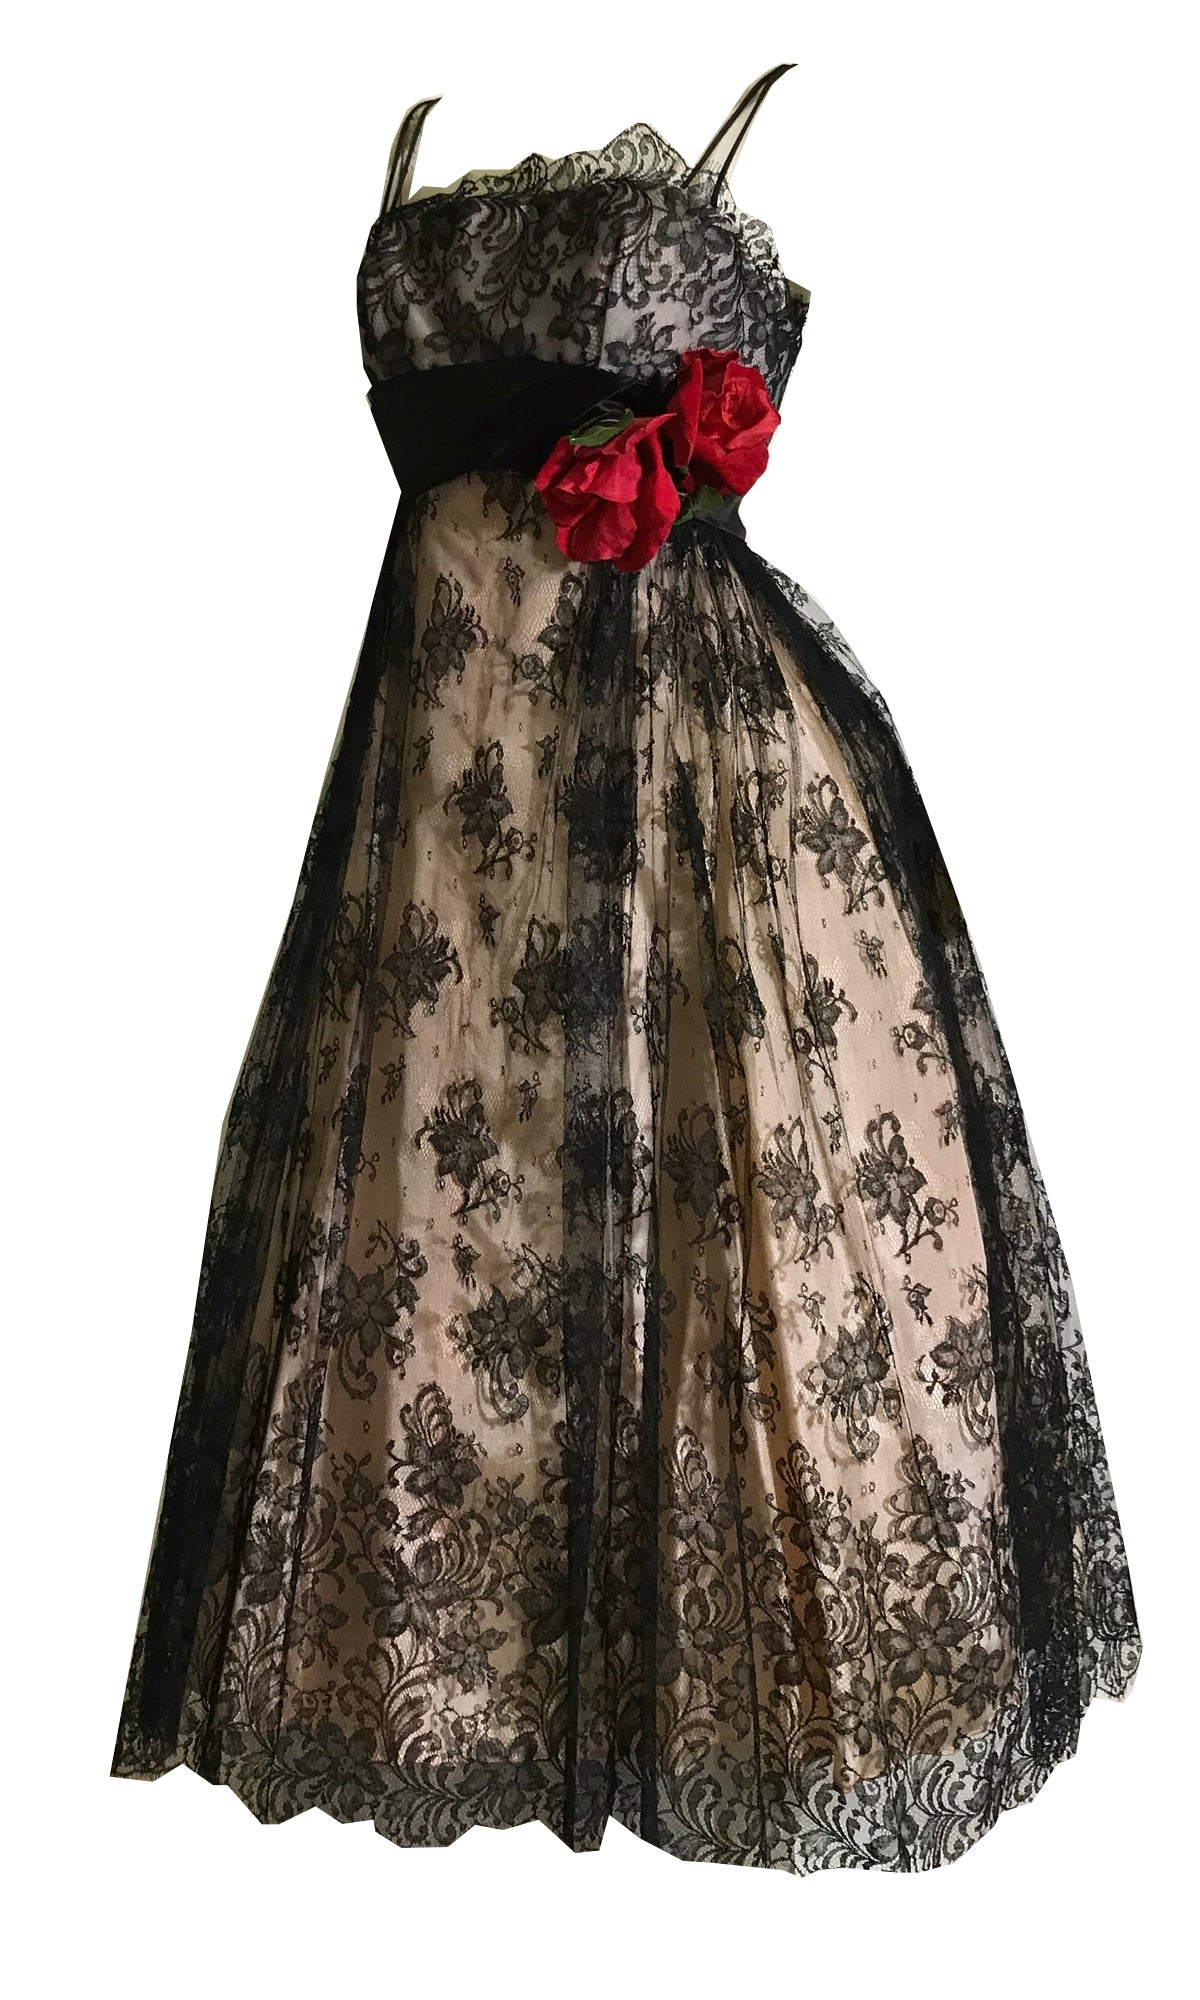 Breathtaking Black French Chantilly Party Dress with Red Velvet Roses circa 1960s